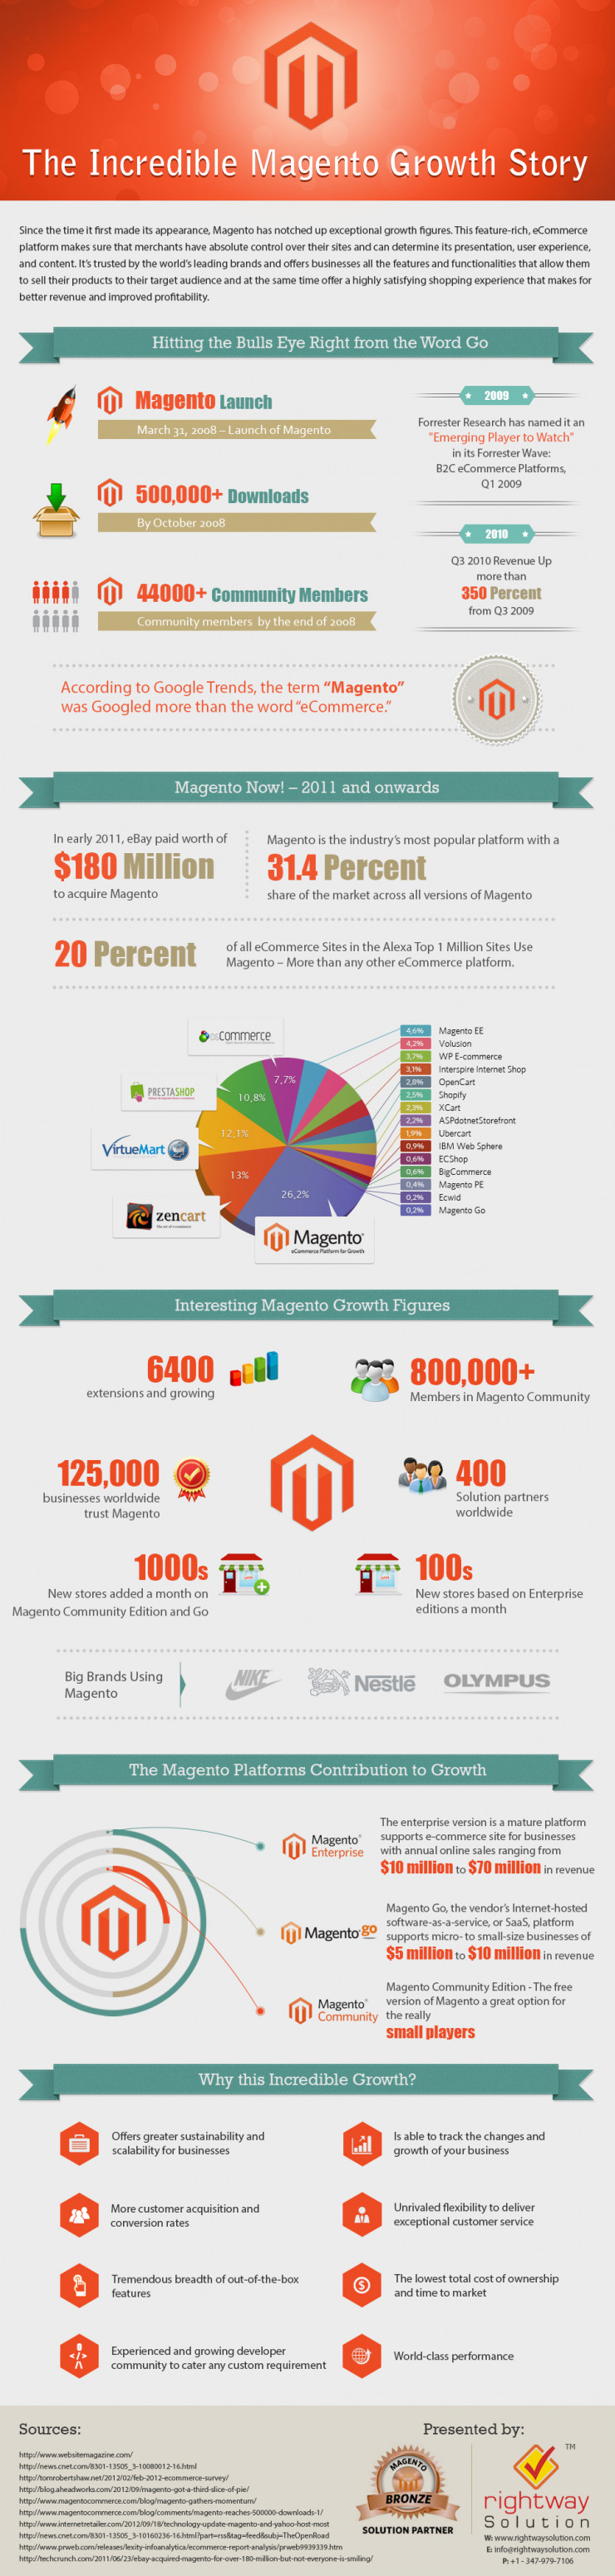 Magento the Best Open source Platform for eCommerce - by Imorphosis